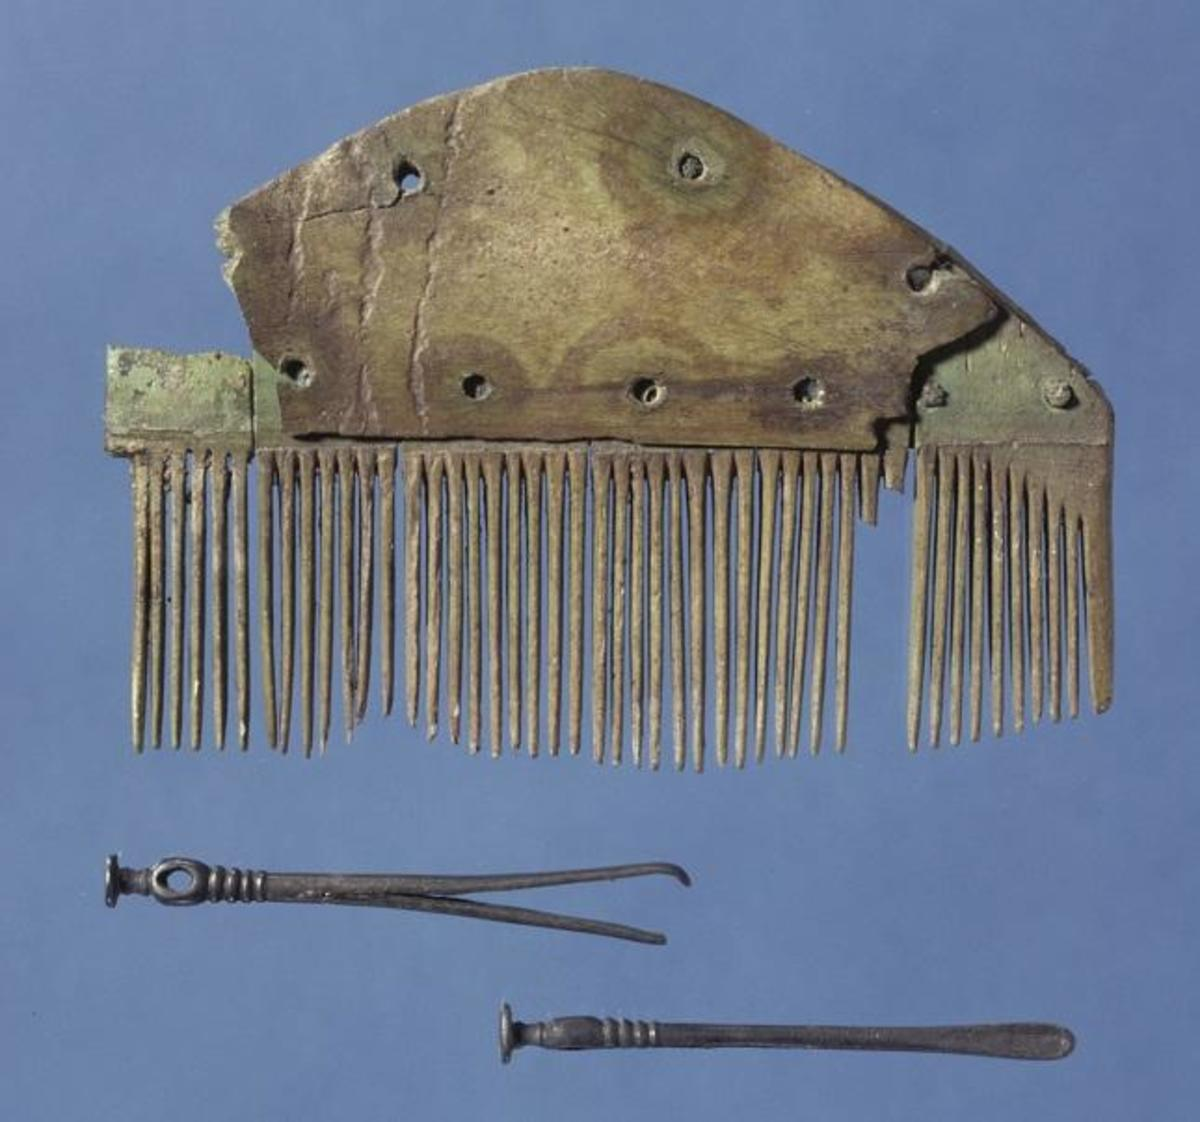 An example of a comb from an excavation